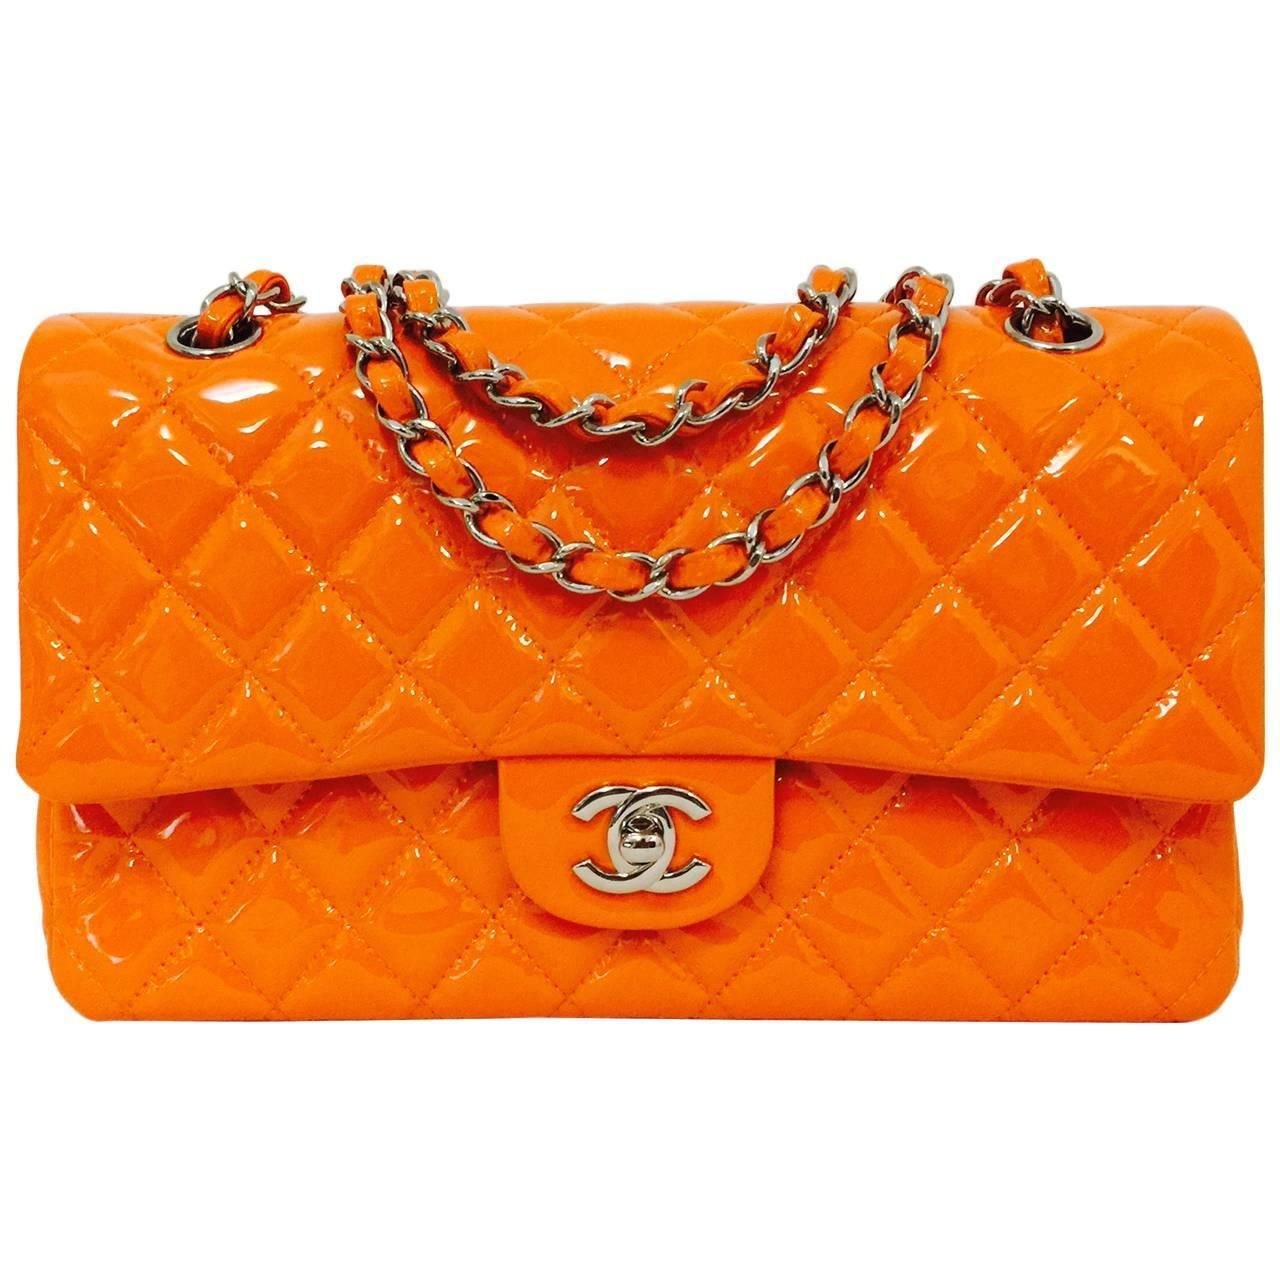 Leather quilted handbags and purses - Chanel Orange Diamond Quilted Patent Leather 2 55 Double Flap Bag